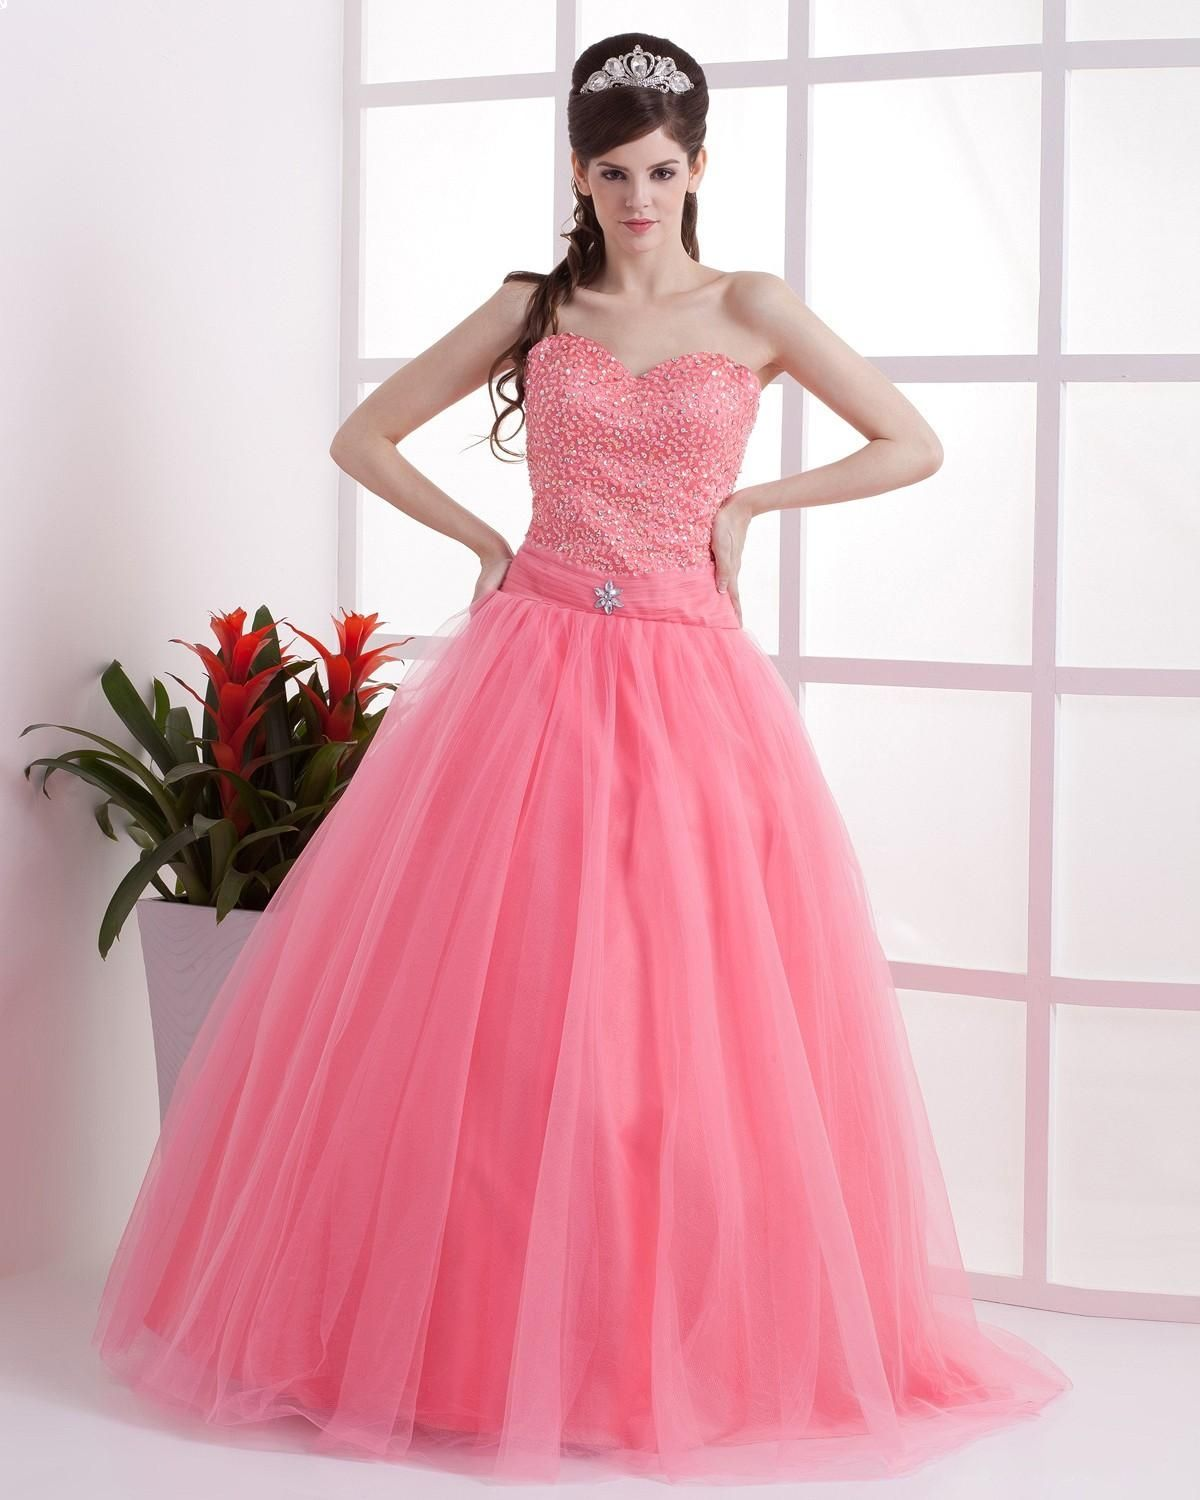 shocking pink color wedding gown with sleeves | Modern Wedding Ideas ...